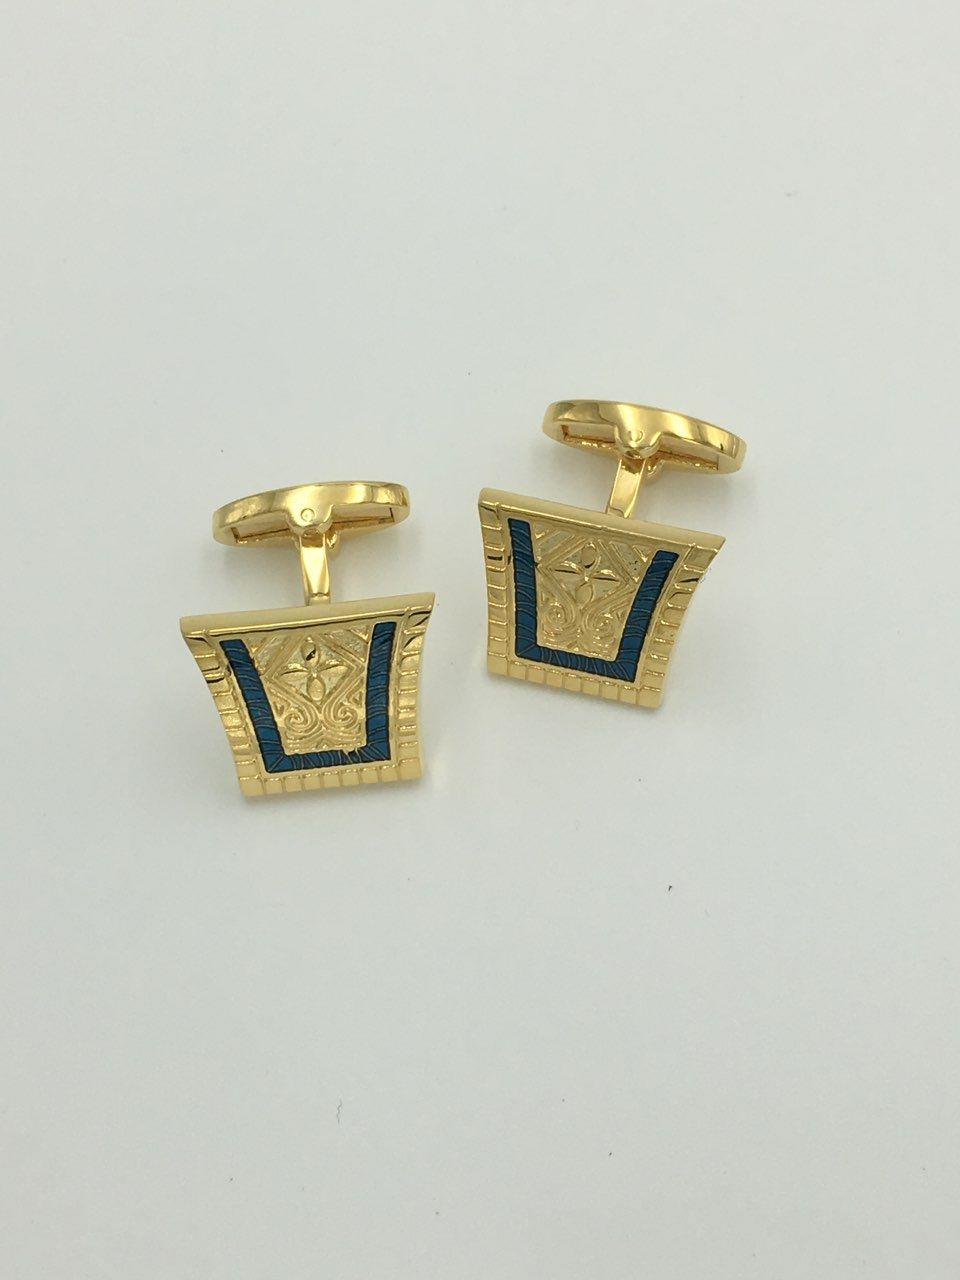 2 Pc. King of the Nile Style Cufflinks - Cobalt Blue